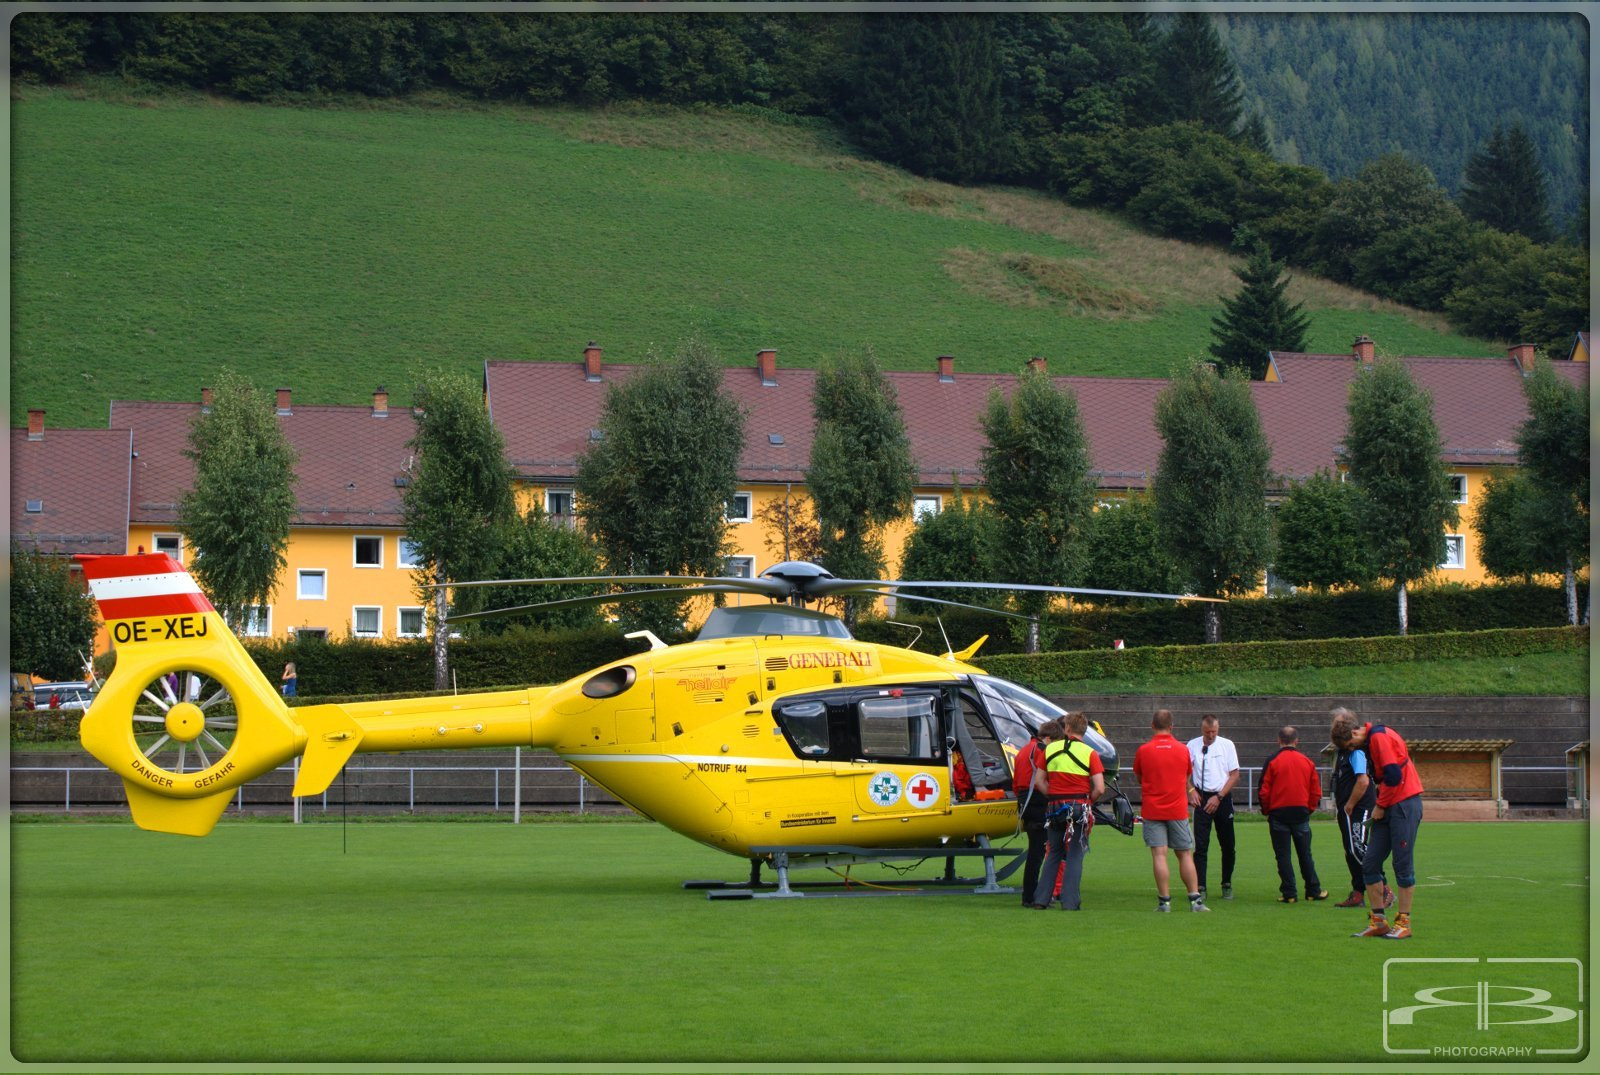 Photograph Rescue Helicopter by Rene BERNHARD on 500px